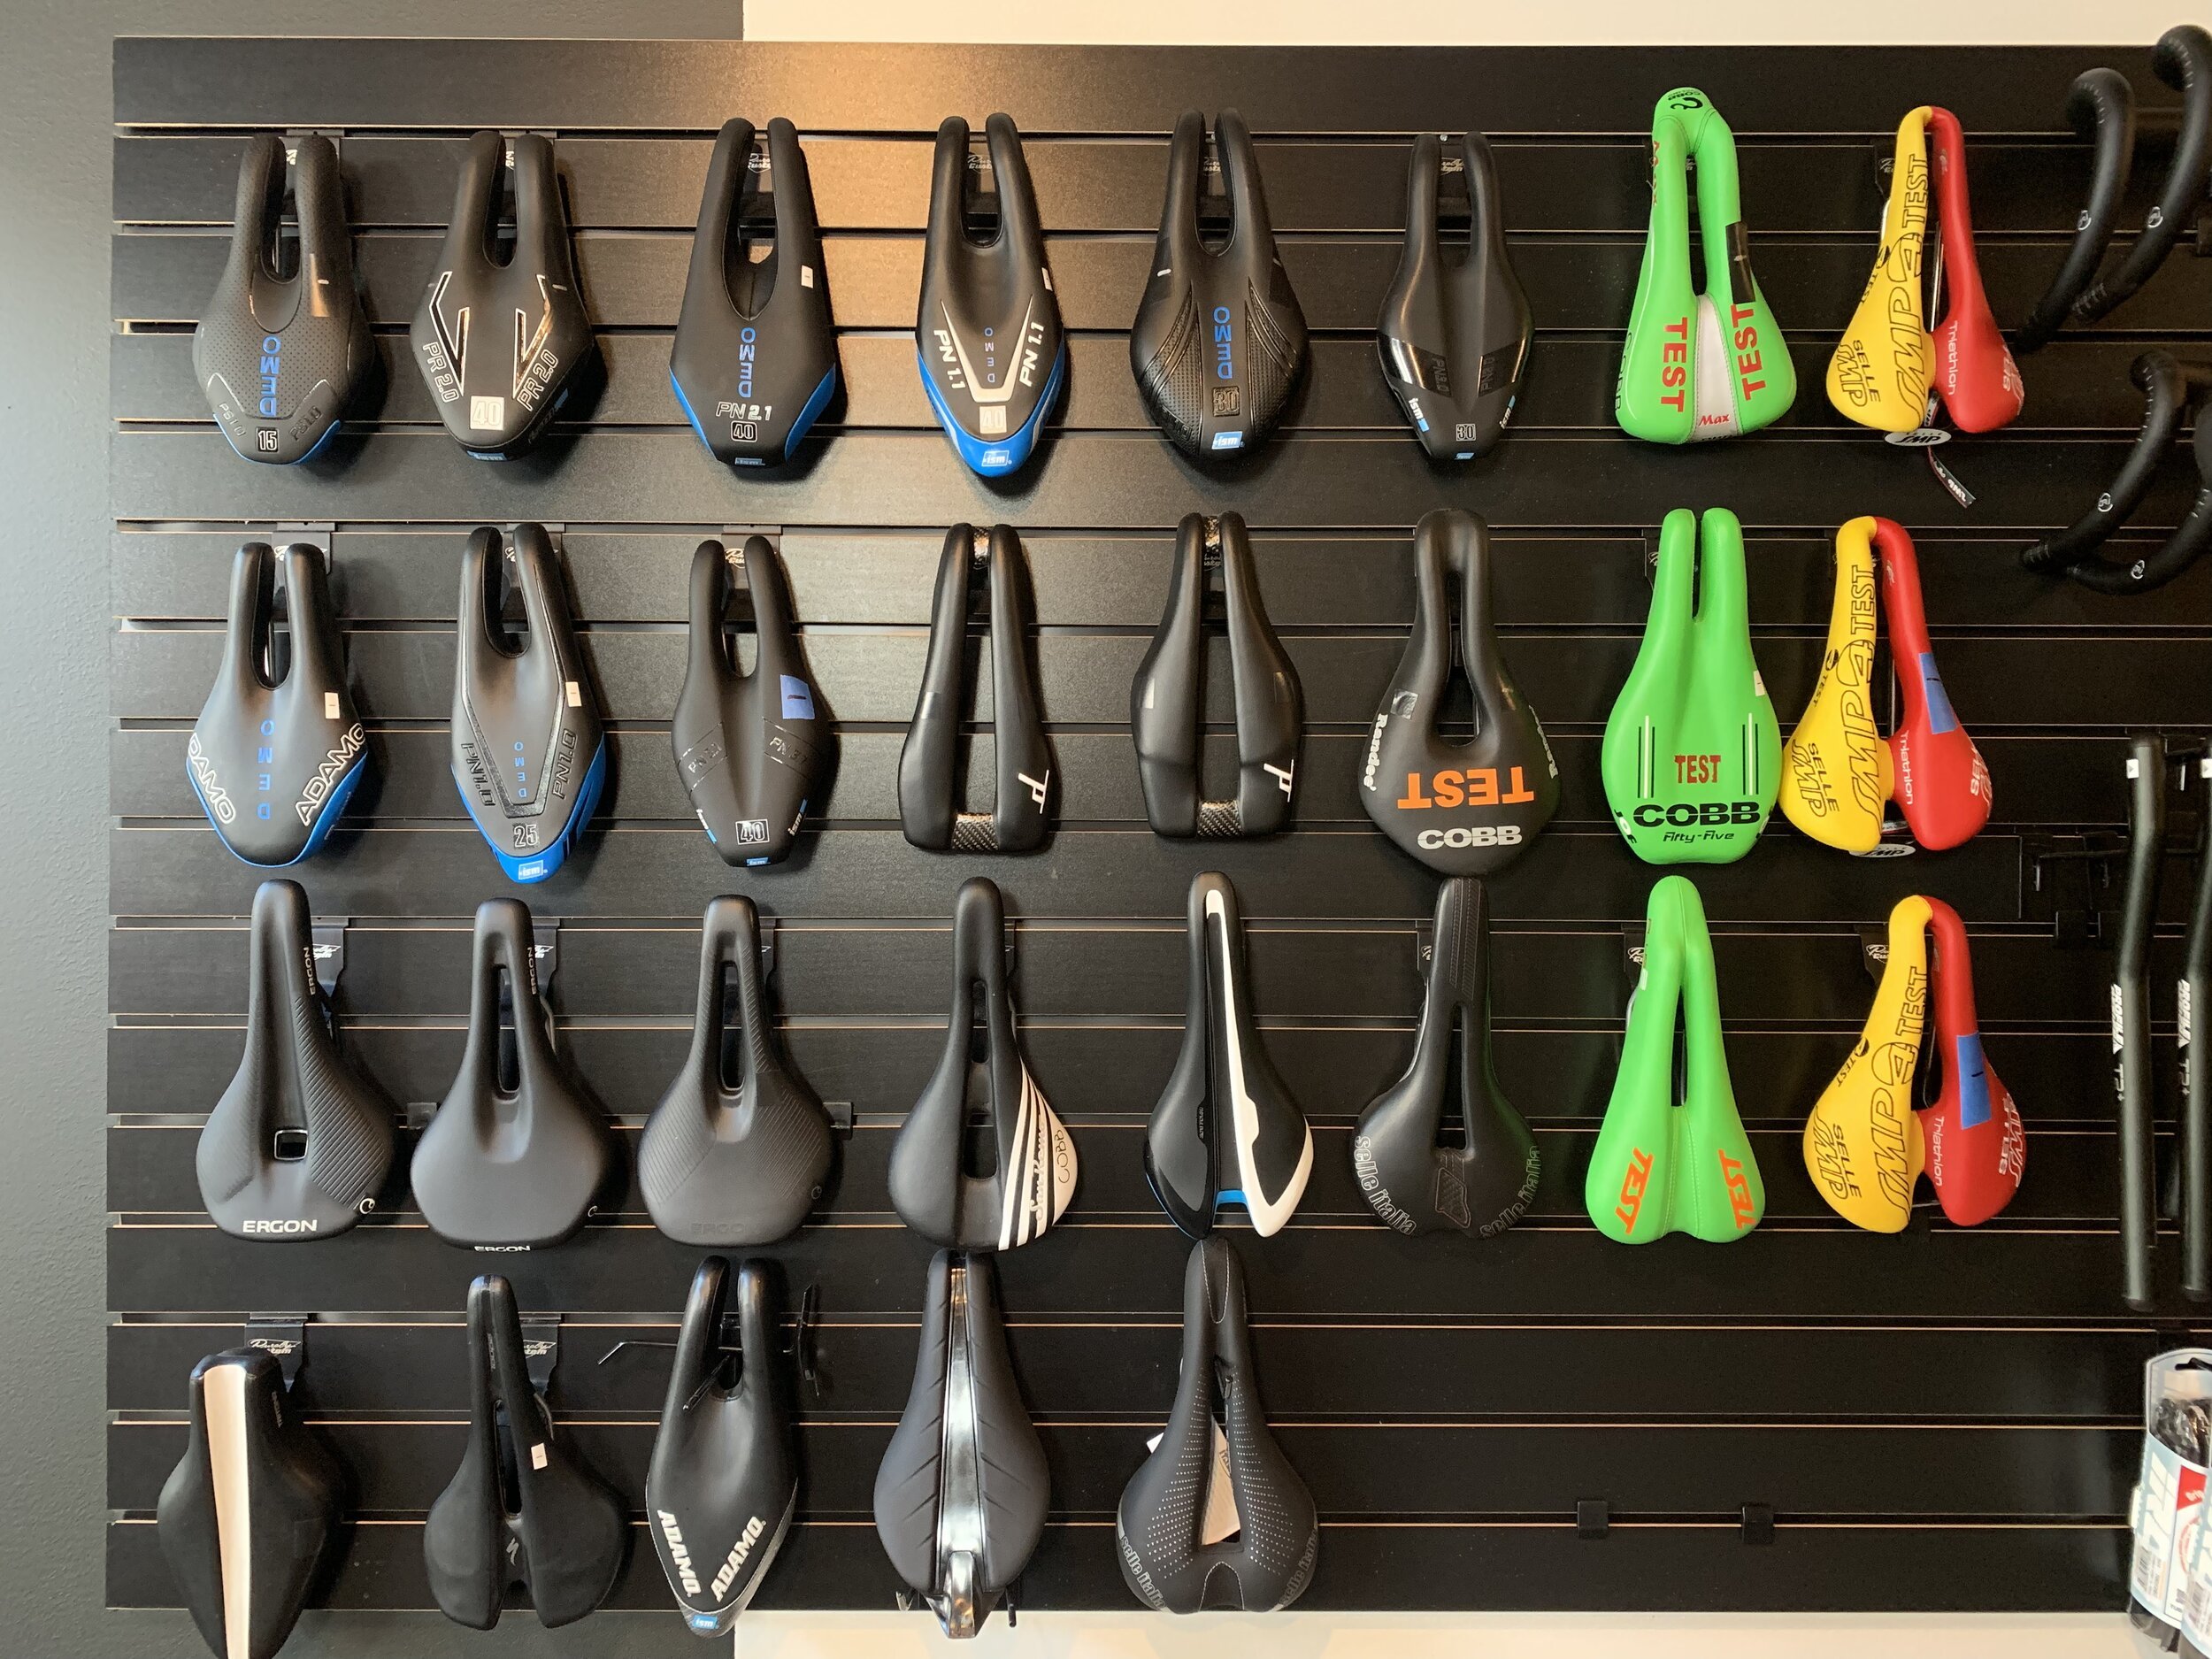 DEMO SADDLE LIBRARY - Our extensive Demo Saddle Library makes testing different saddles a breeze. We have the full range of saddles from ISM and Cobb along with select models from Specialized, Giant, and Fizik.